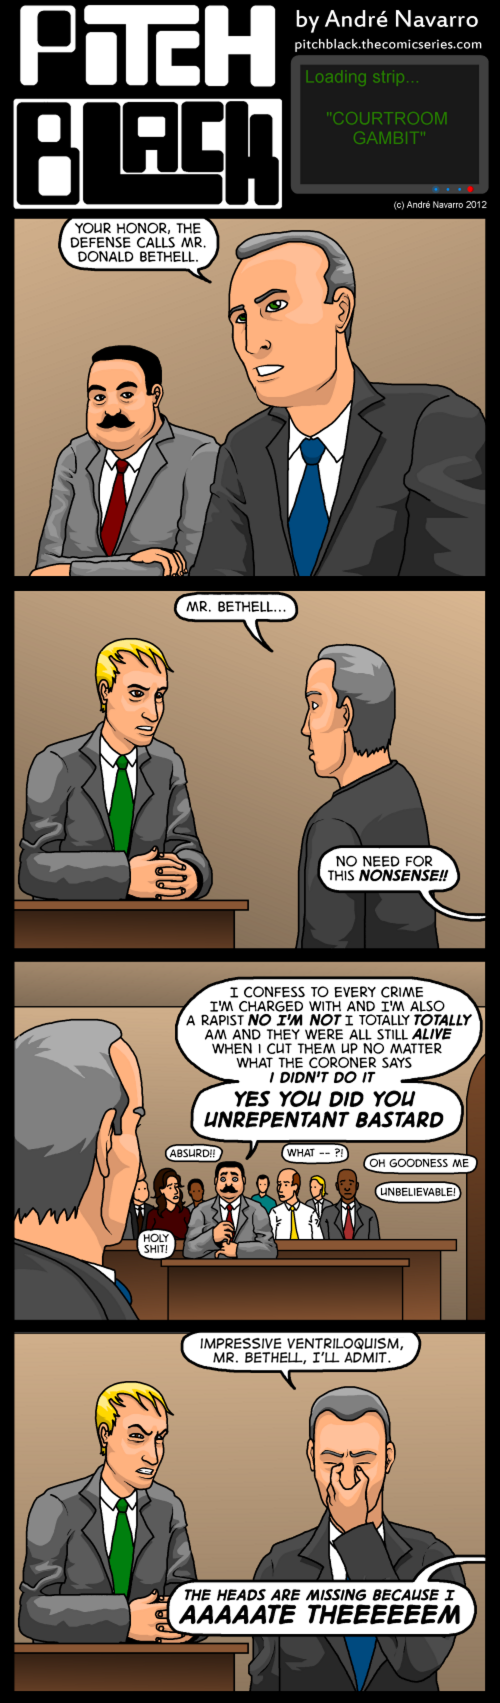 Courtroom Gambit